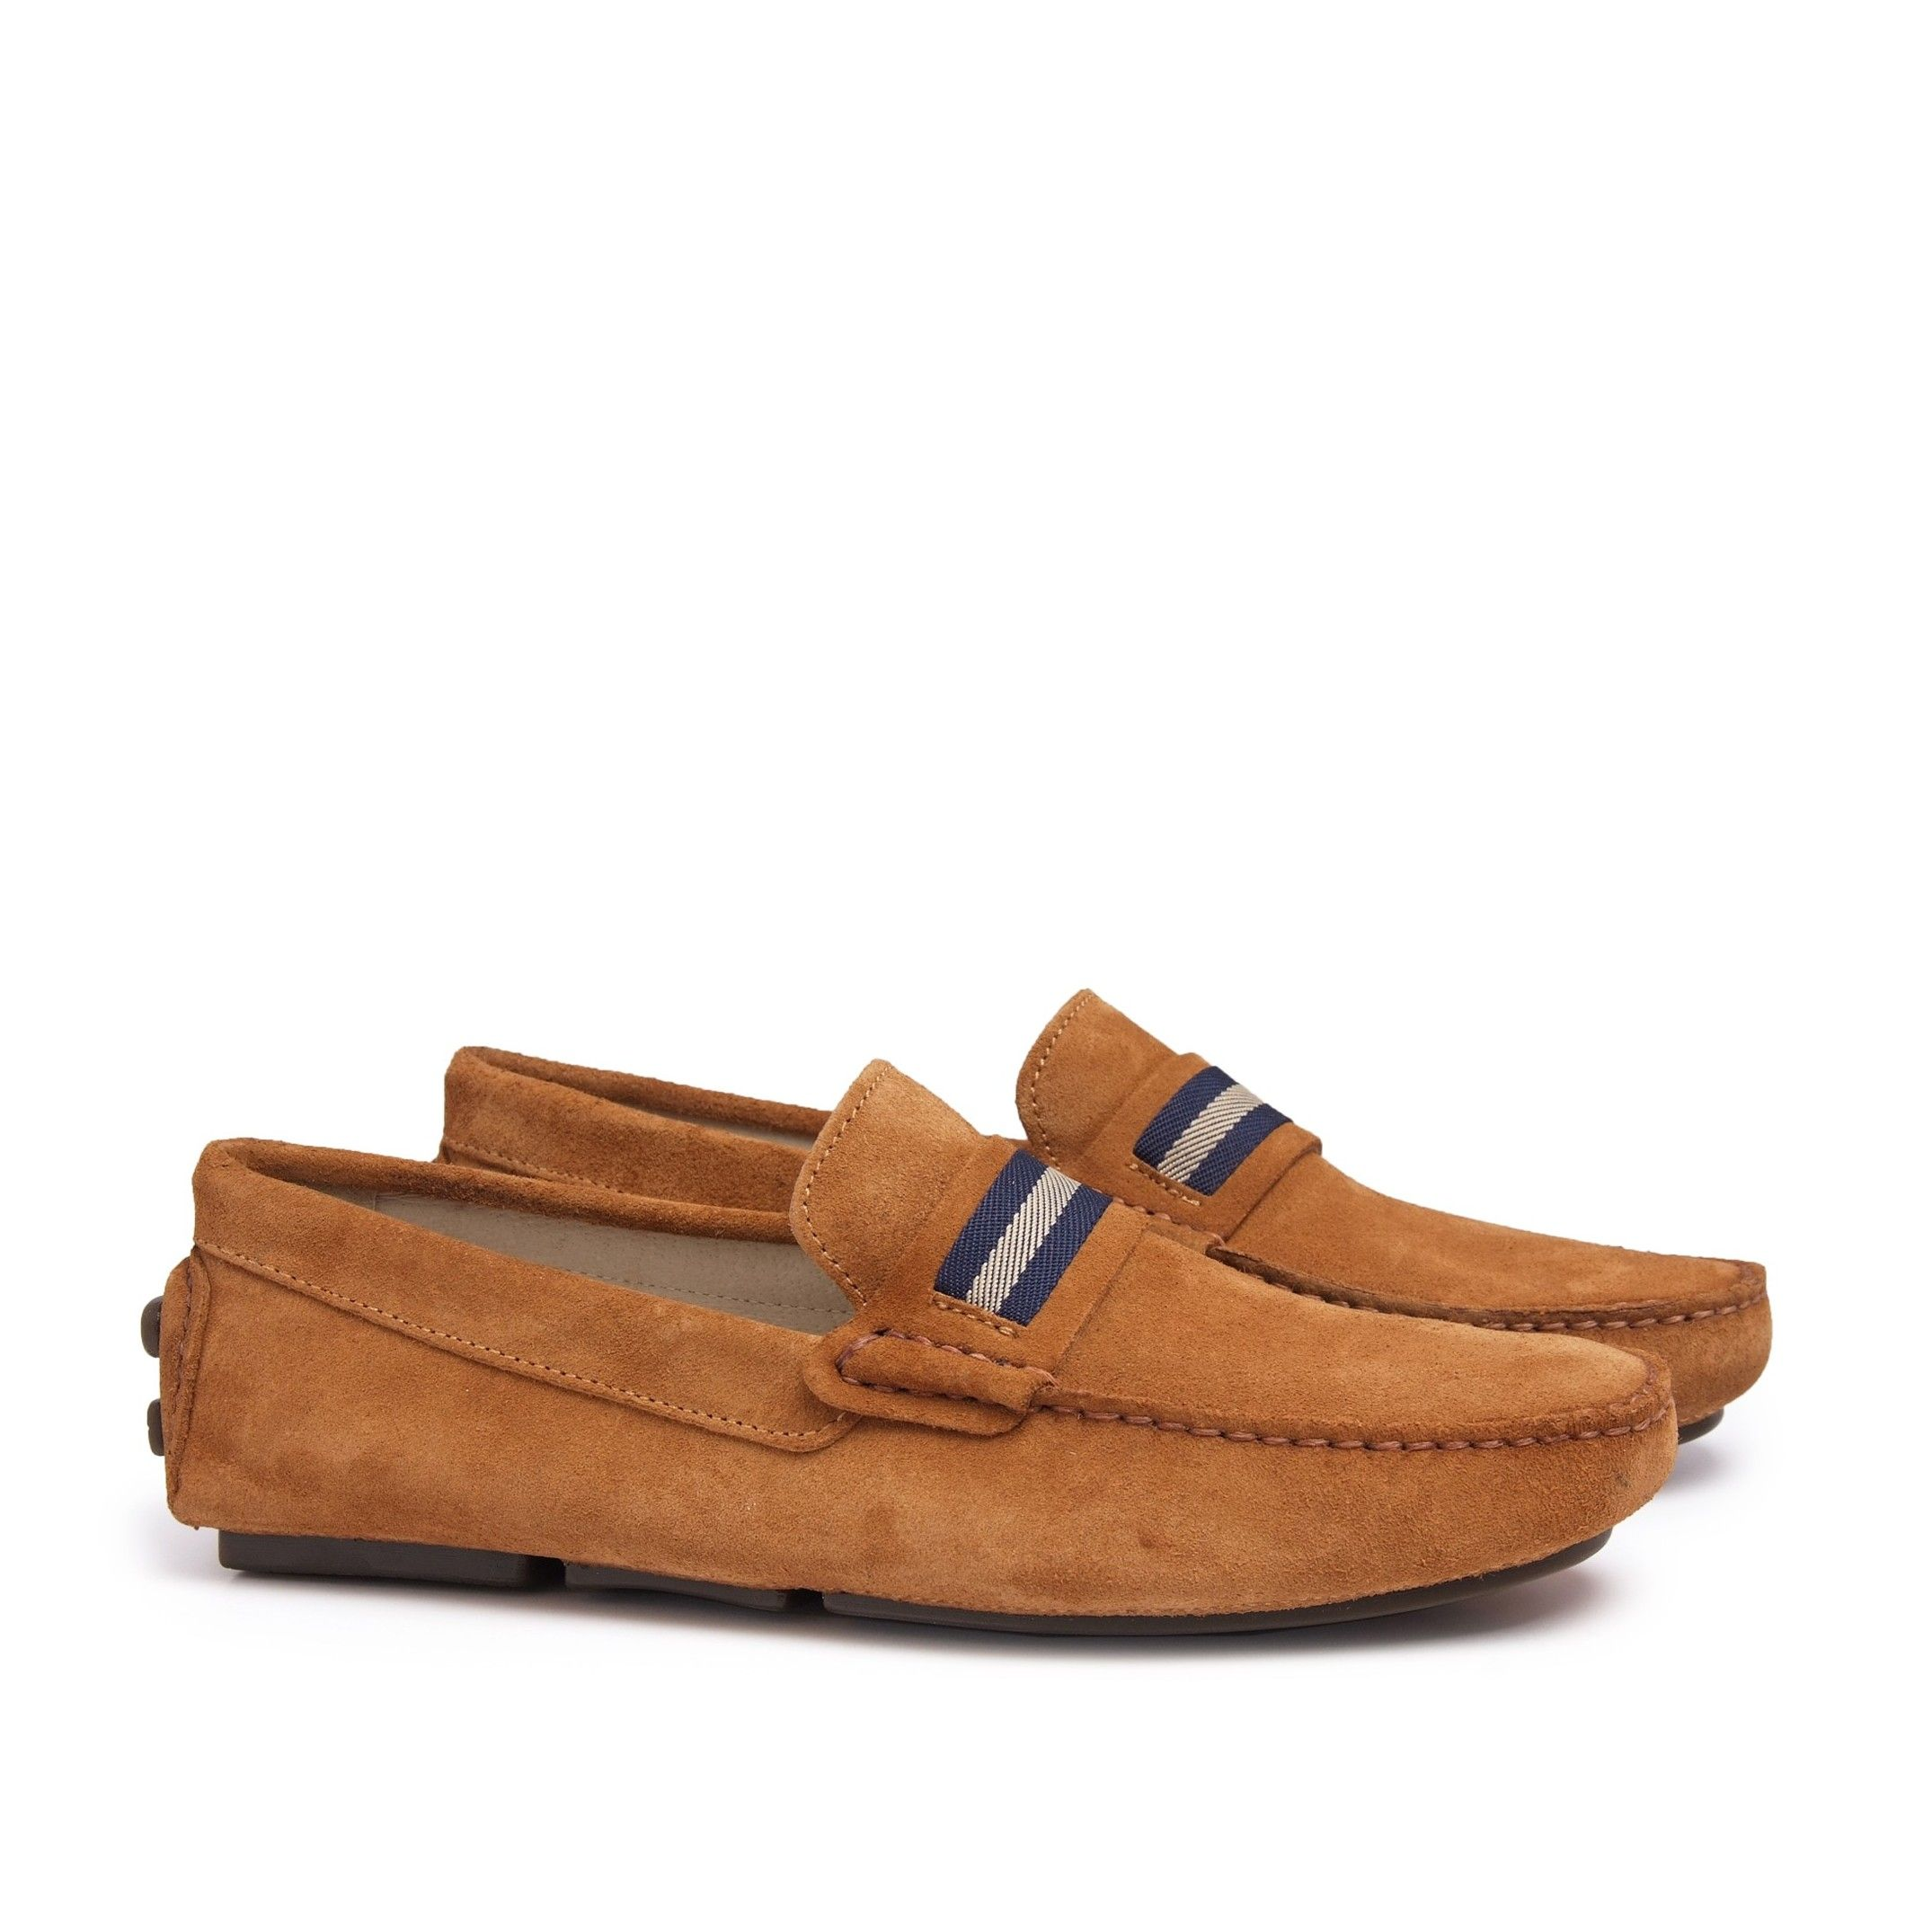 Men's Leather Moccasins Original Shoes in Brown